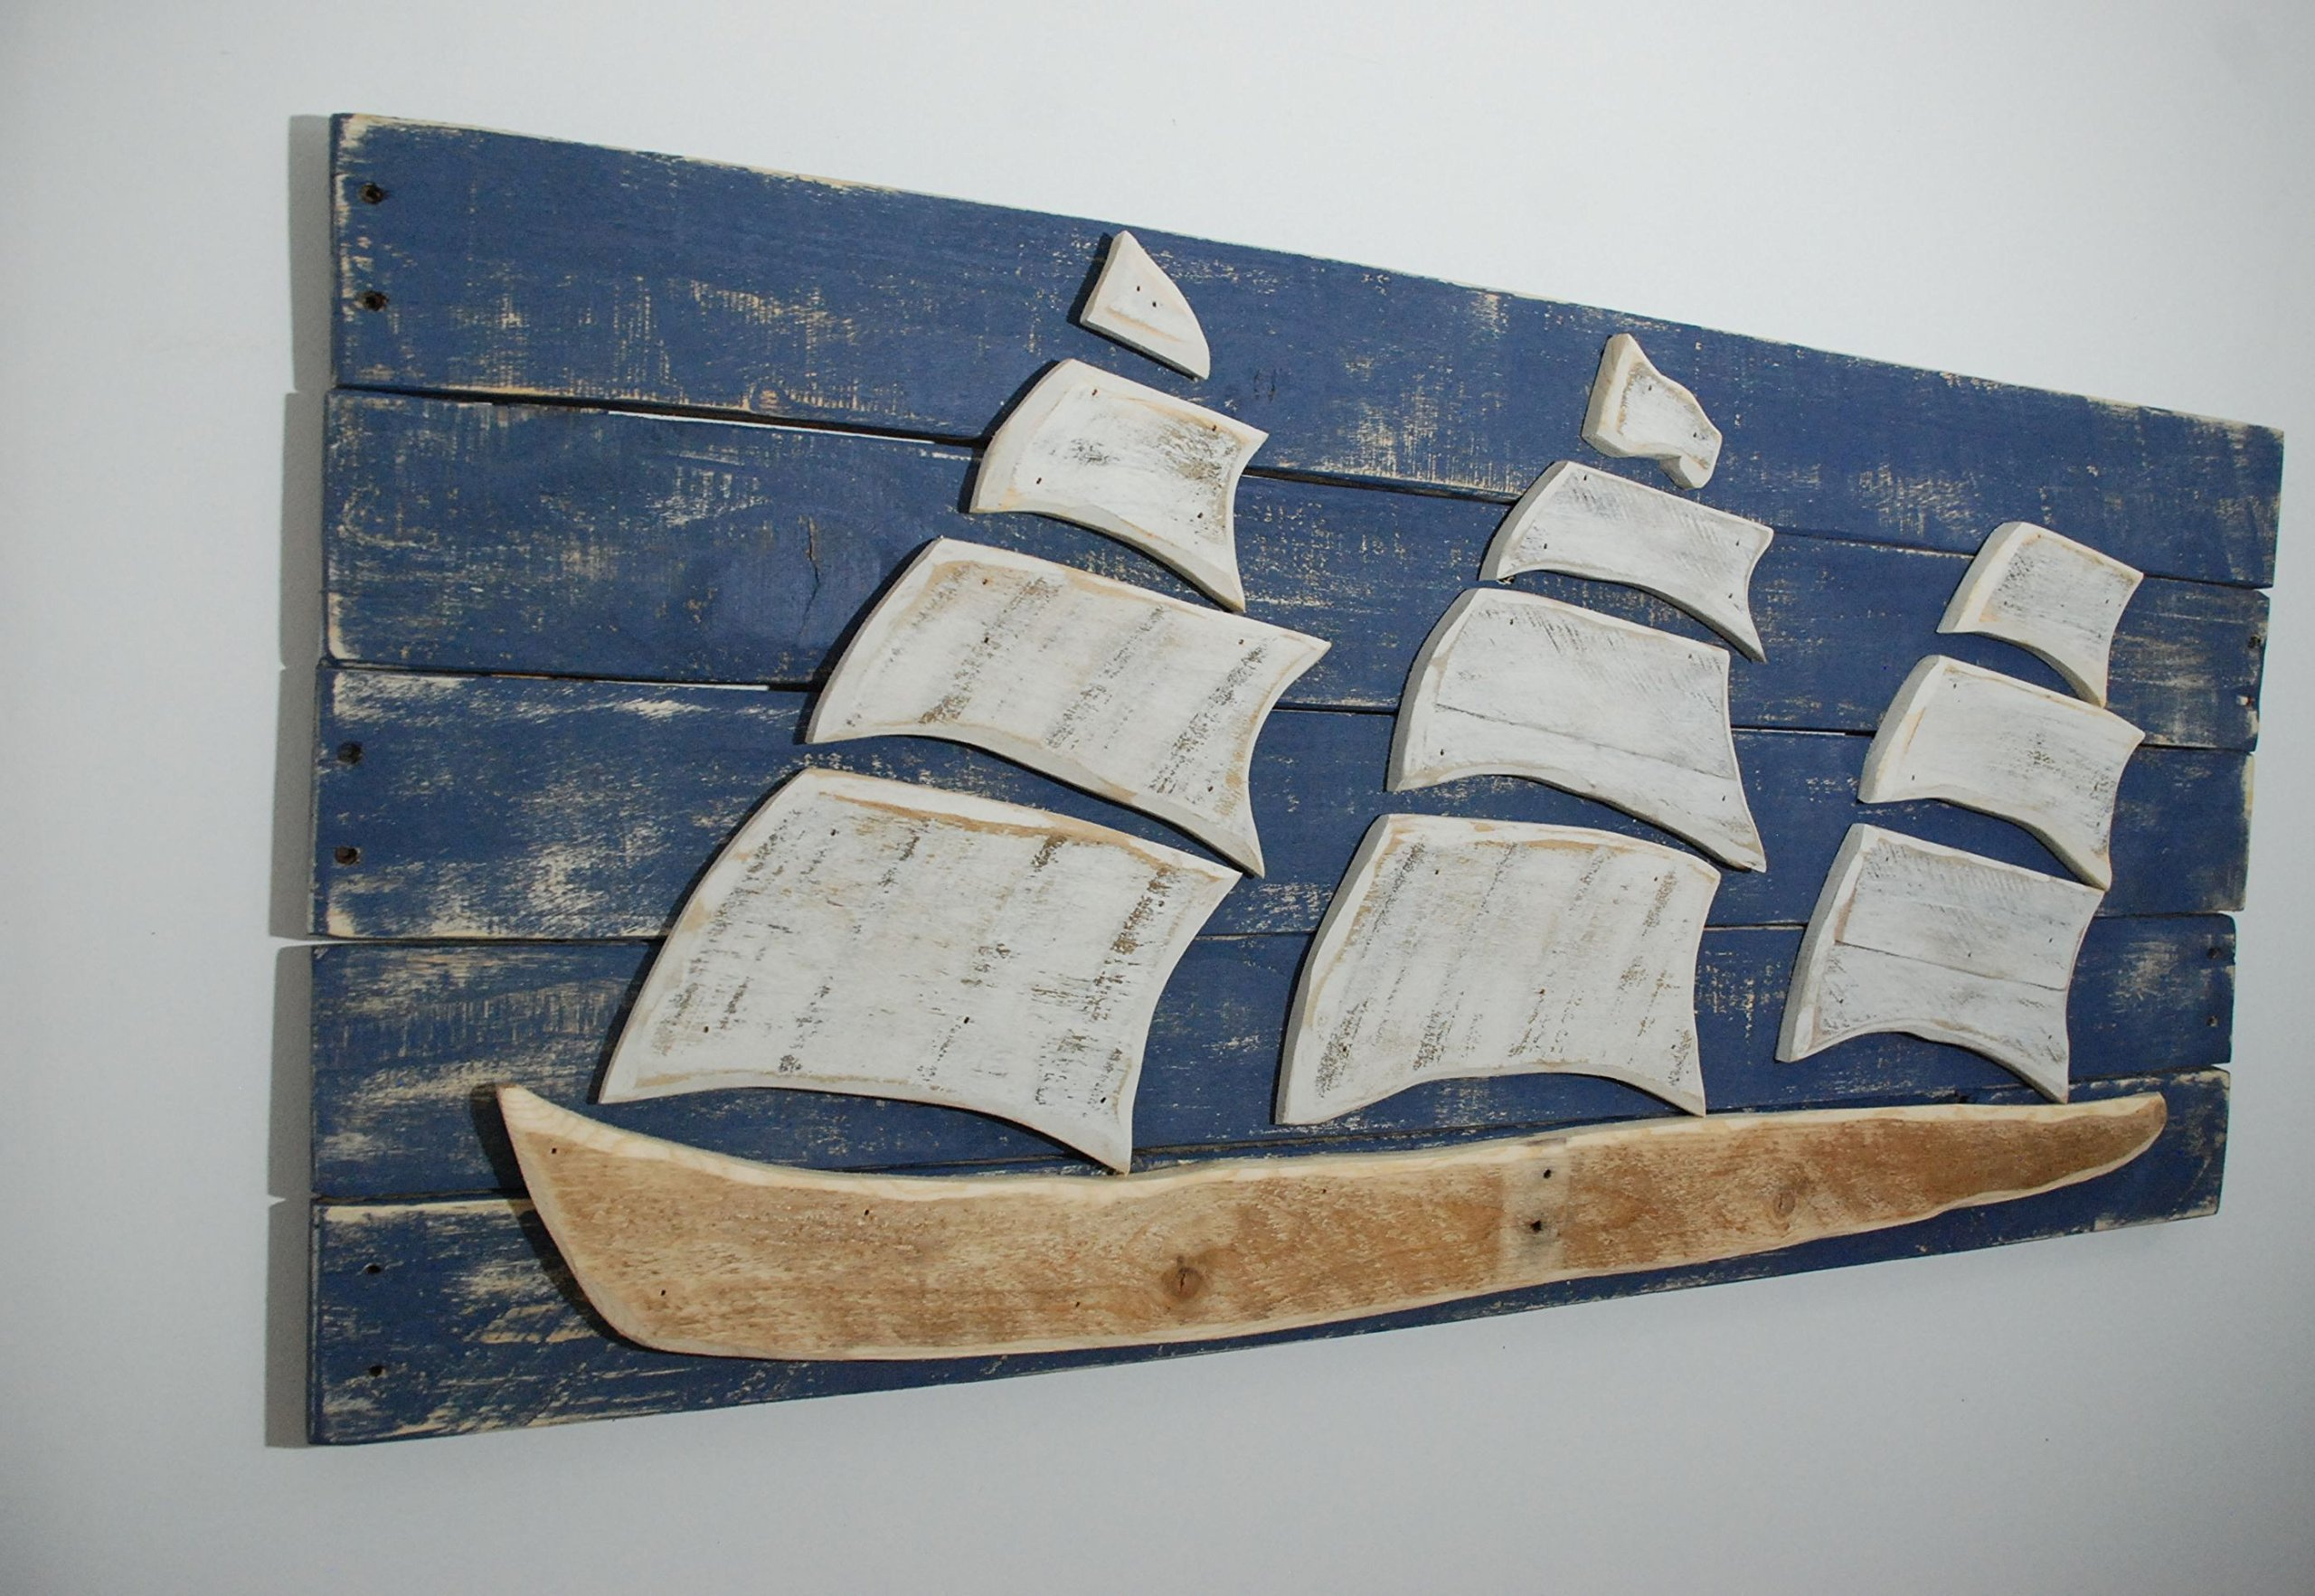 Ship Sailboat Sail Boat Wood Wall Art, Reclaimed Wood Ship, Sofa Art, Nautical Sign, Sailboat Art, Sailboat Decor, Wood Ship, Beach Decor